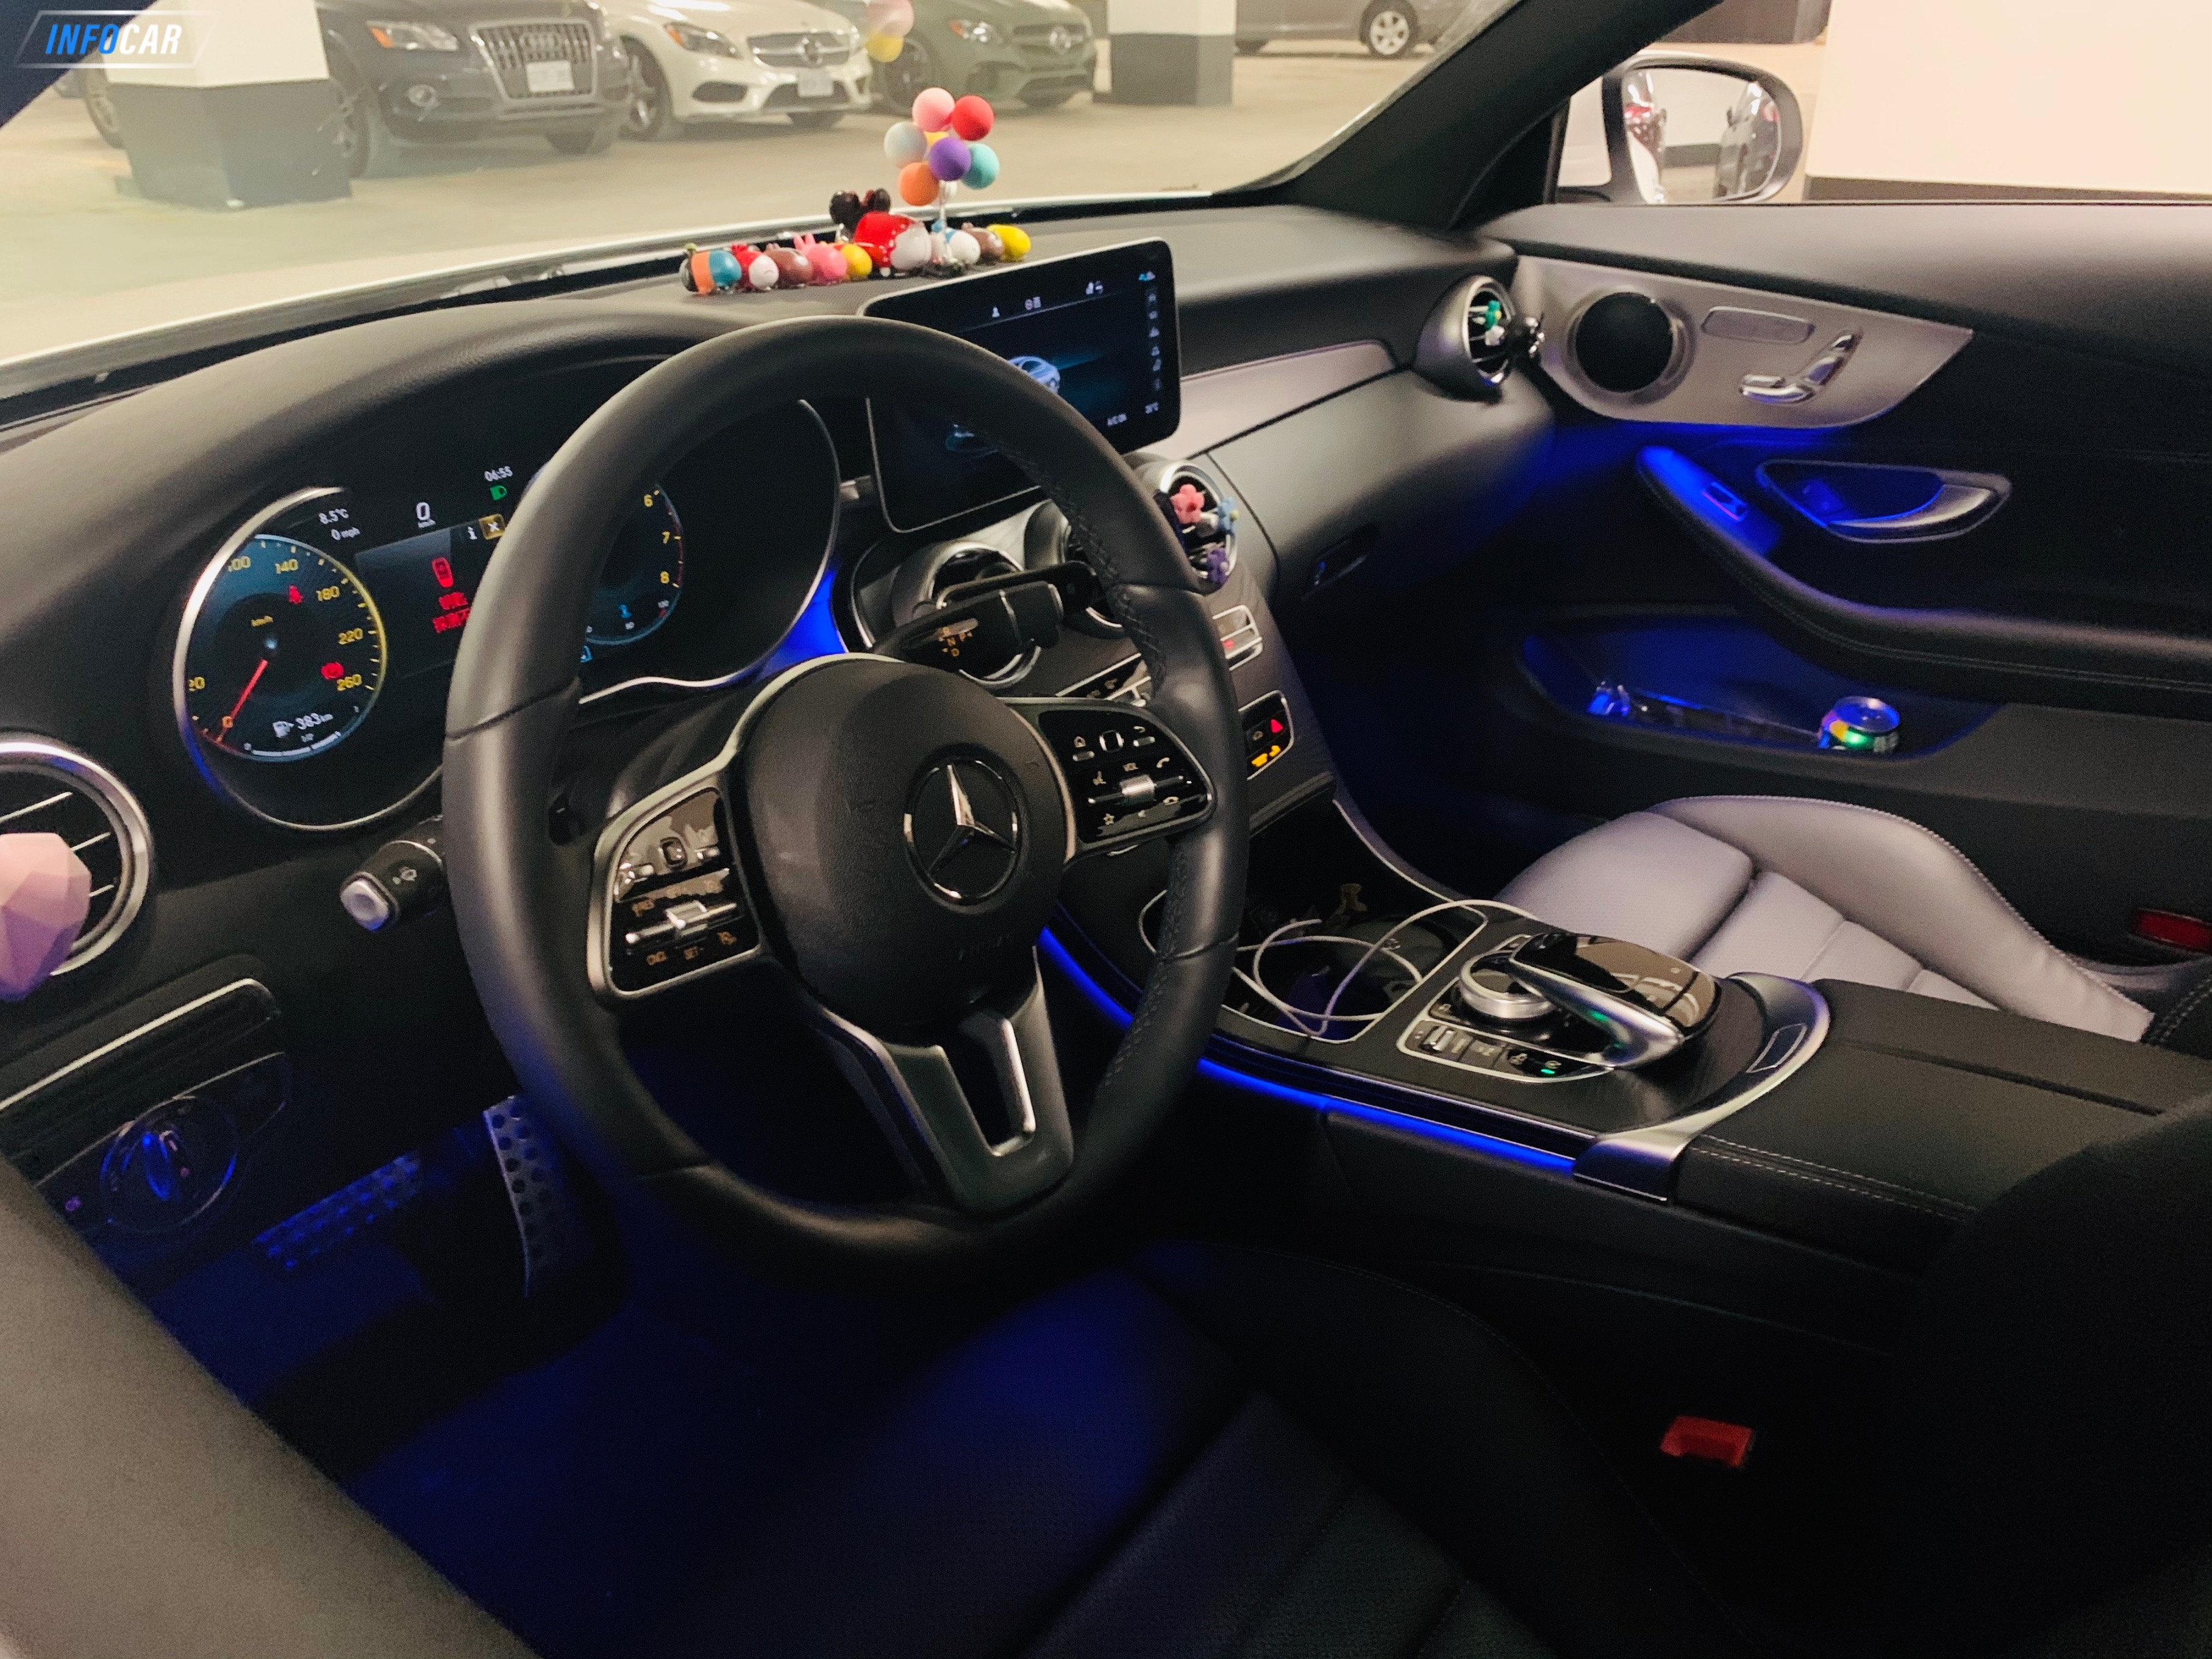 2020 Mercedes-Benz C-Class C300 Coupe - INFOCAR - Toronto's Most Comprehensive New and Used Auto Trading Platform